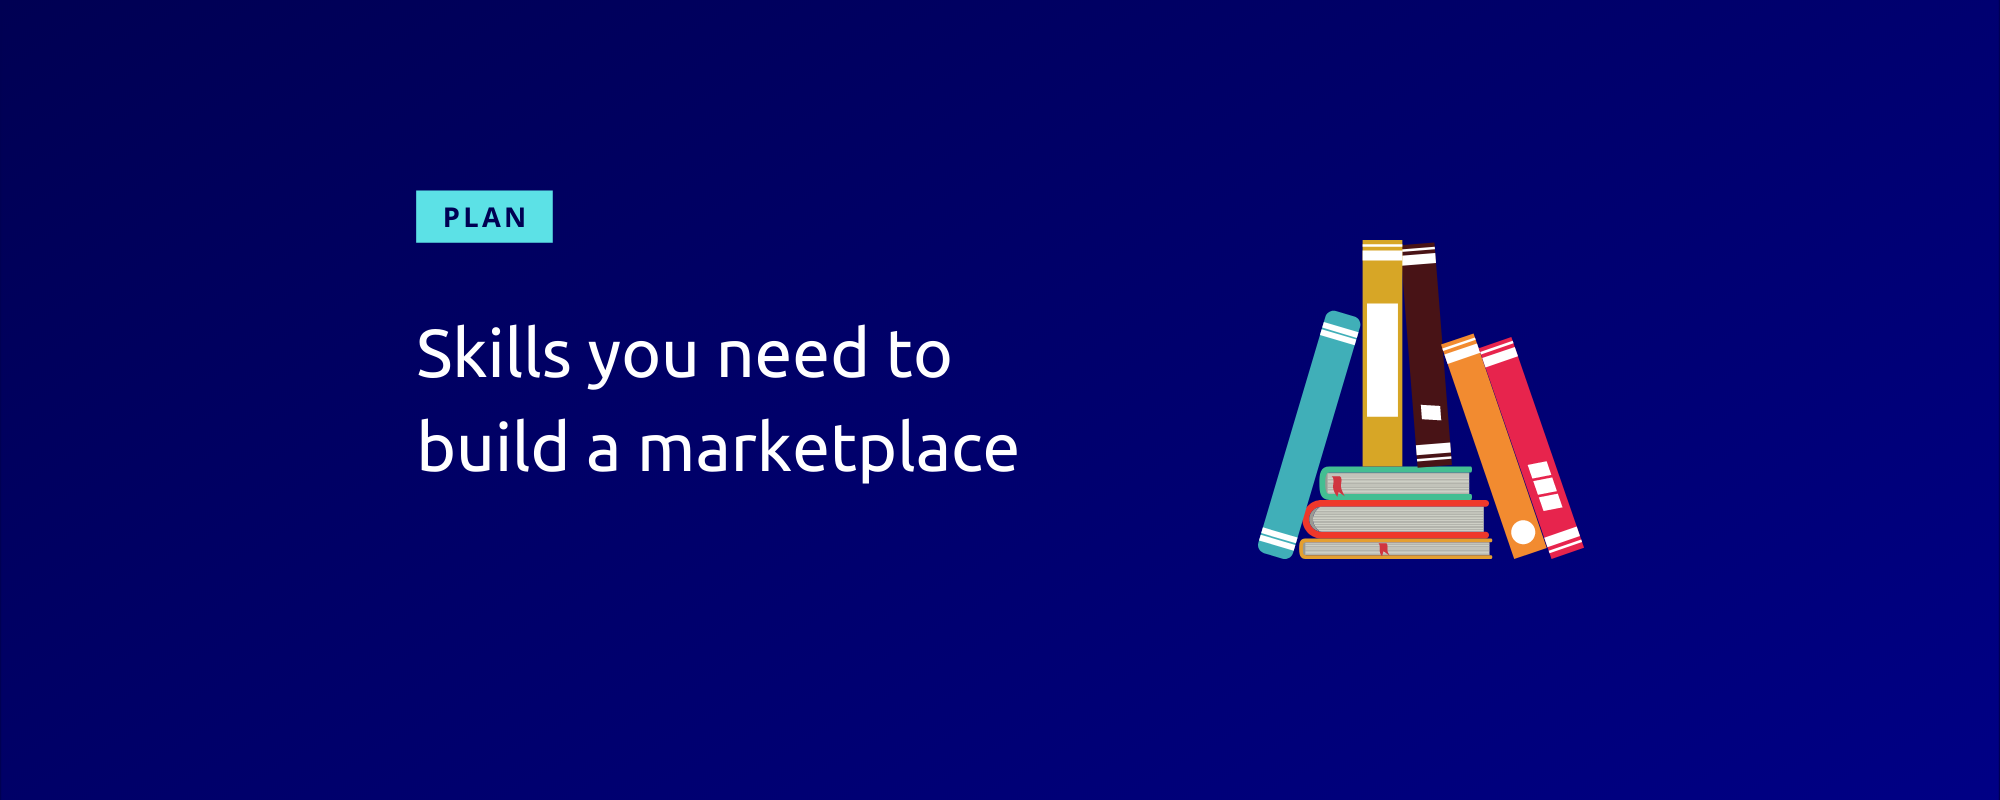 Skills you need to build a marketplace